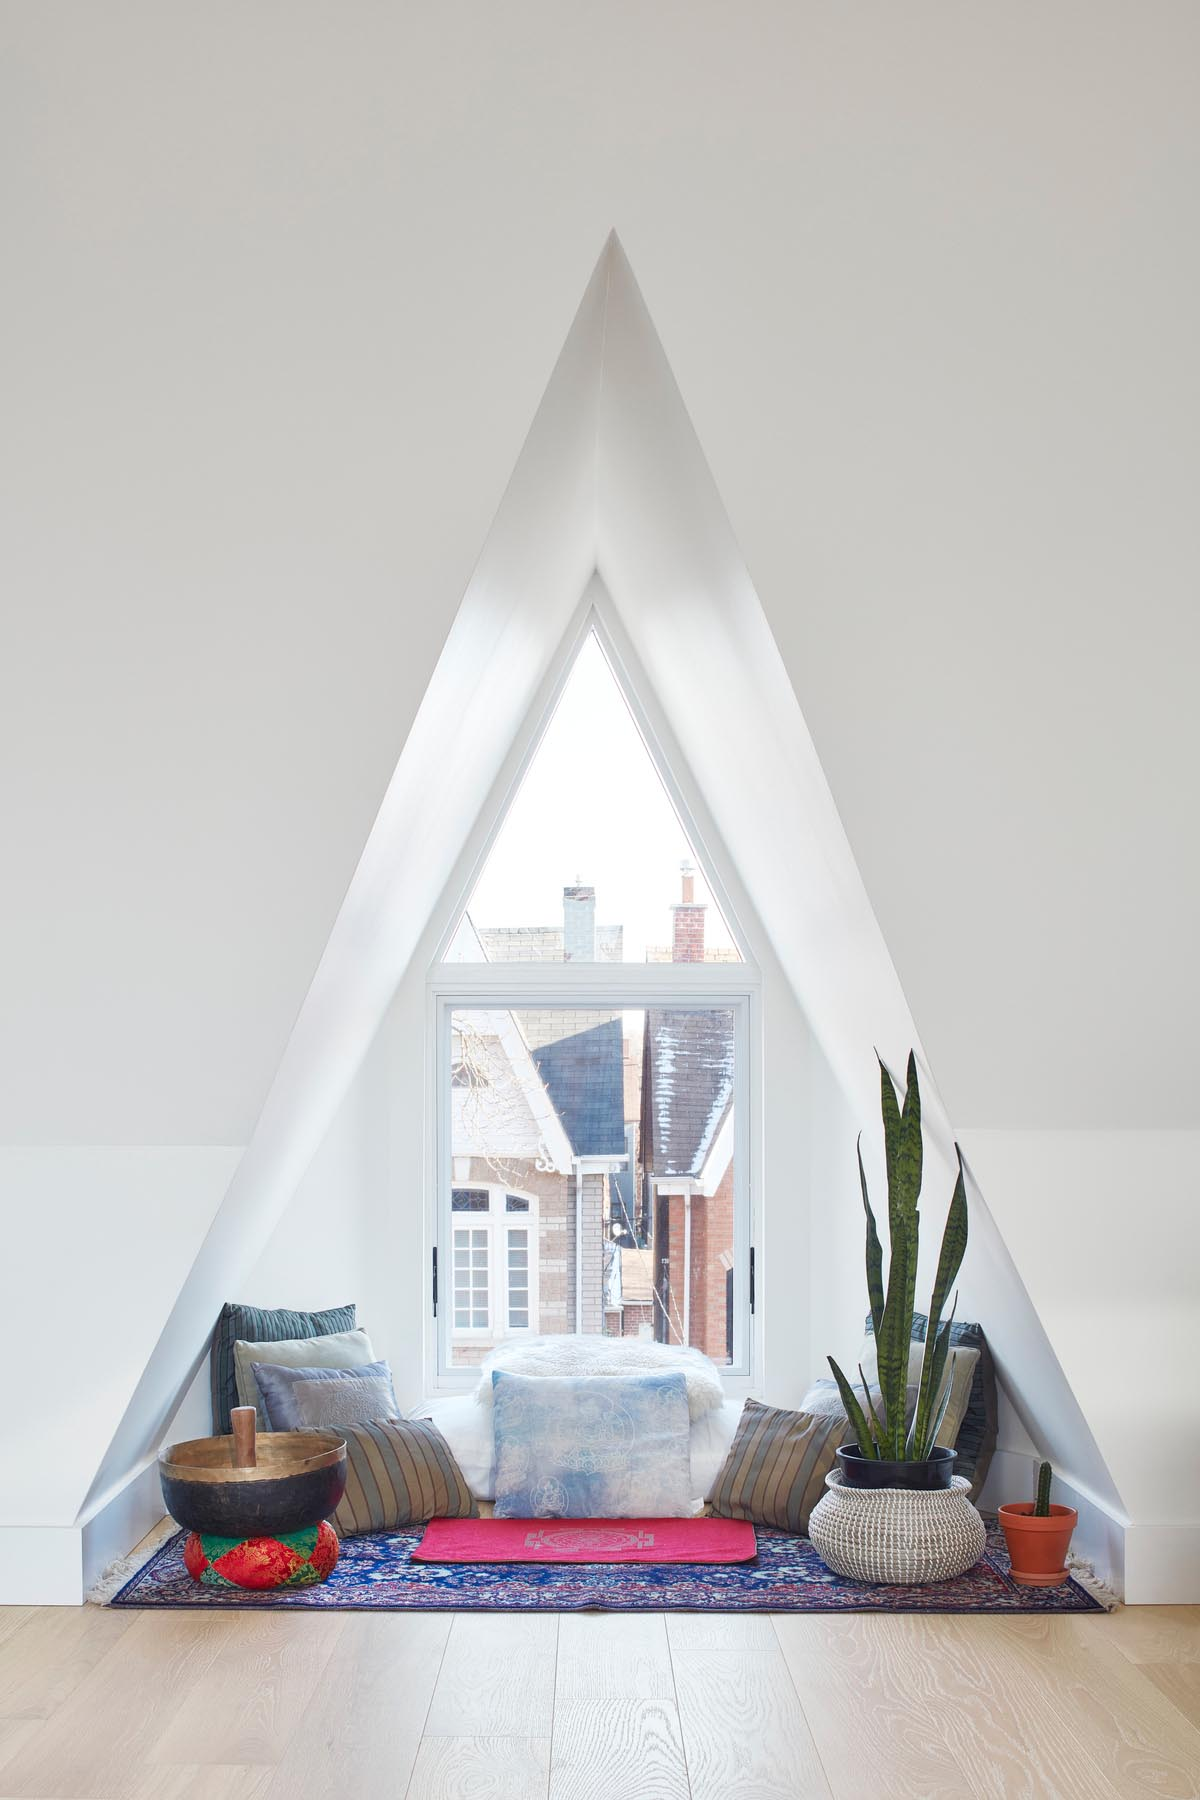 A triangular window nook that been furnished with a rug, plenty of pillows, plants, and a meditation bowl.